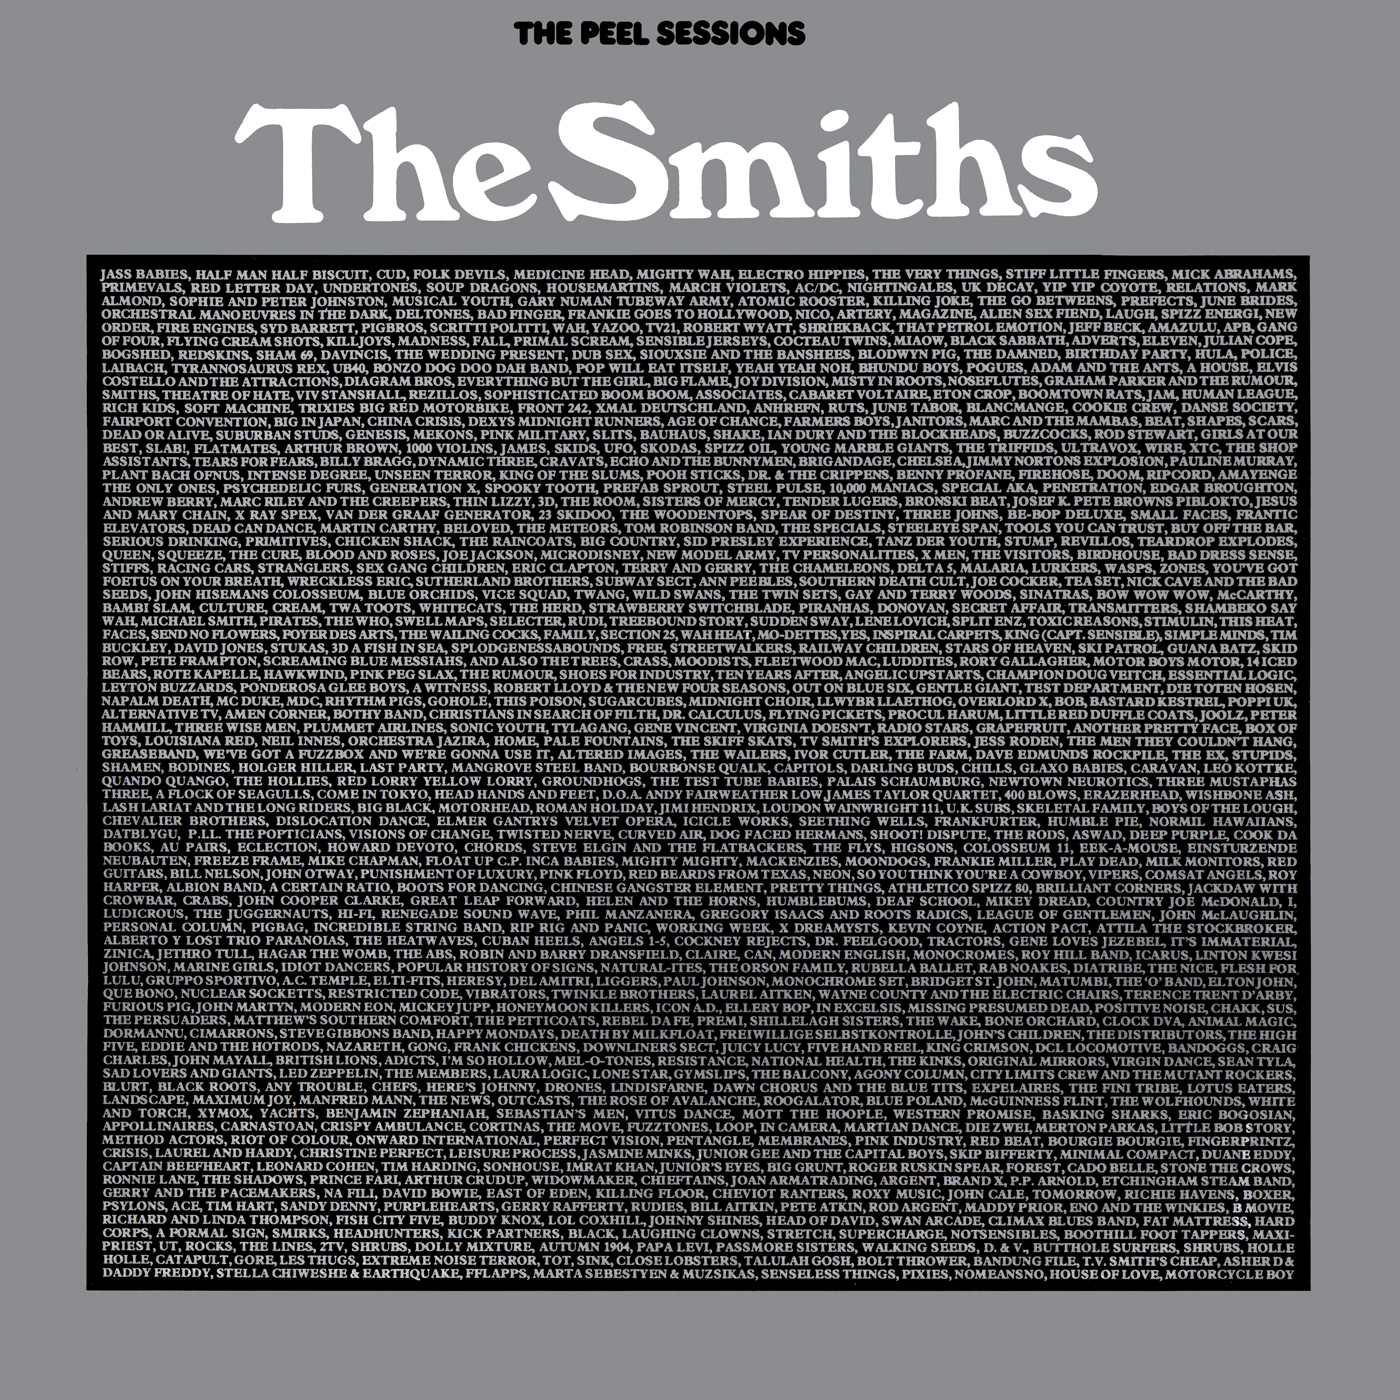 1988 - The Peel Sessions